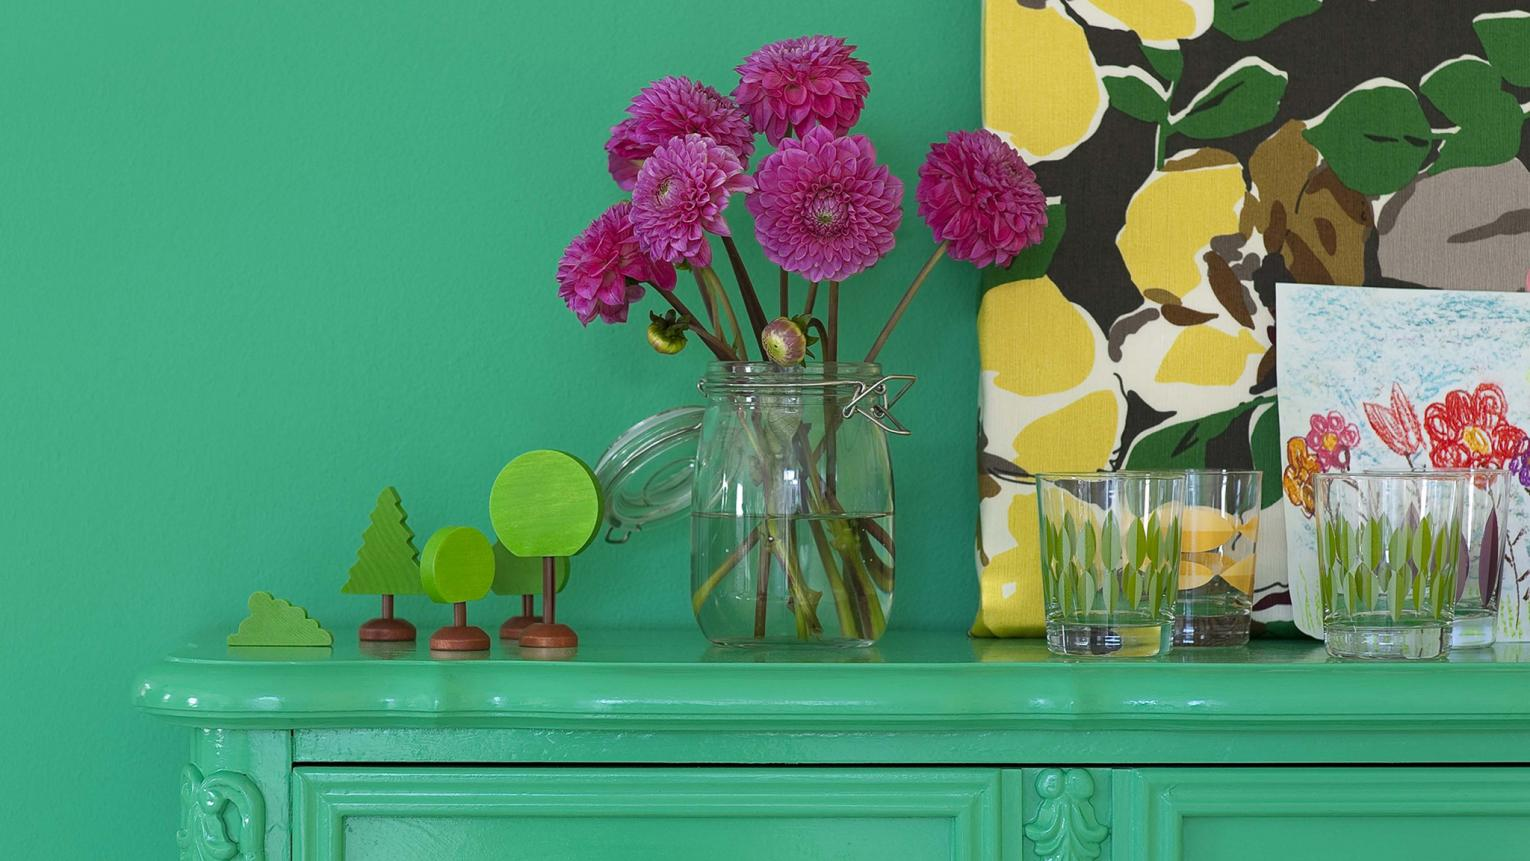 Kitchen cabinets painted in bright green.